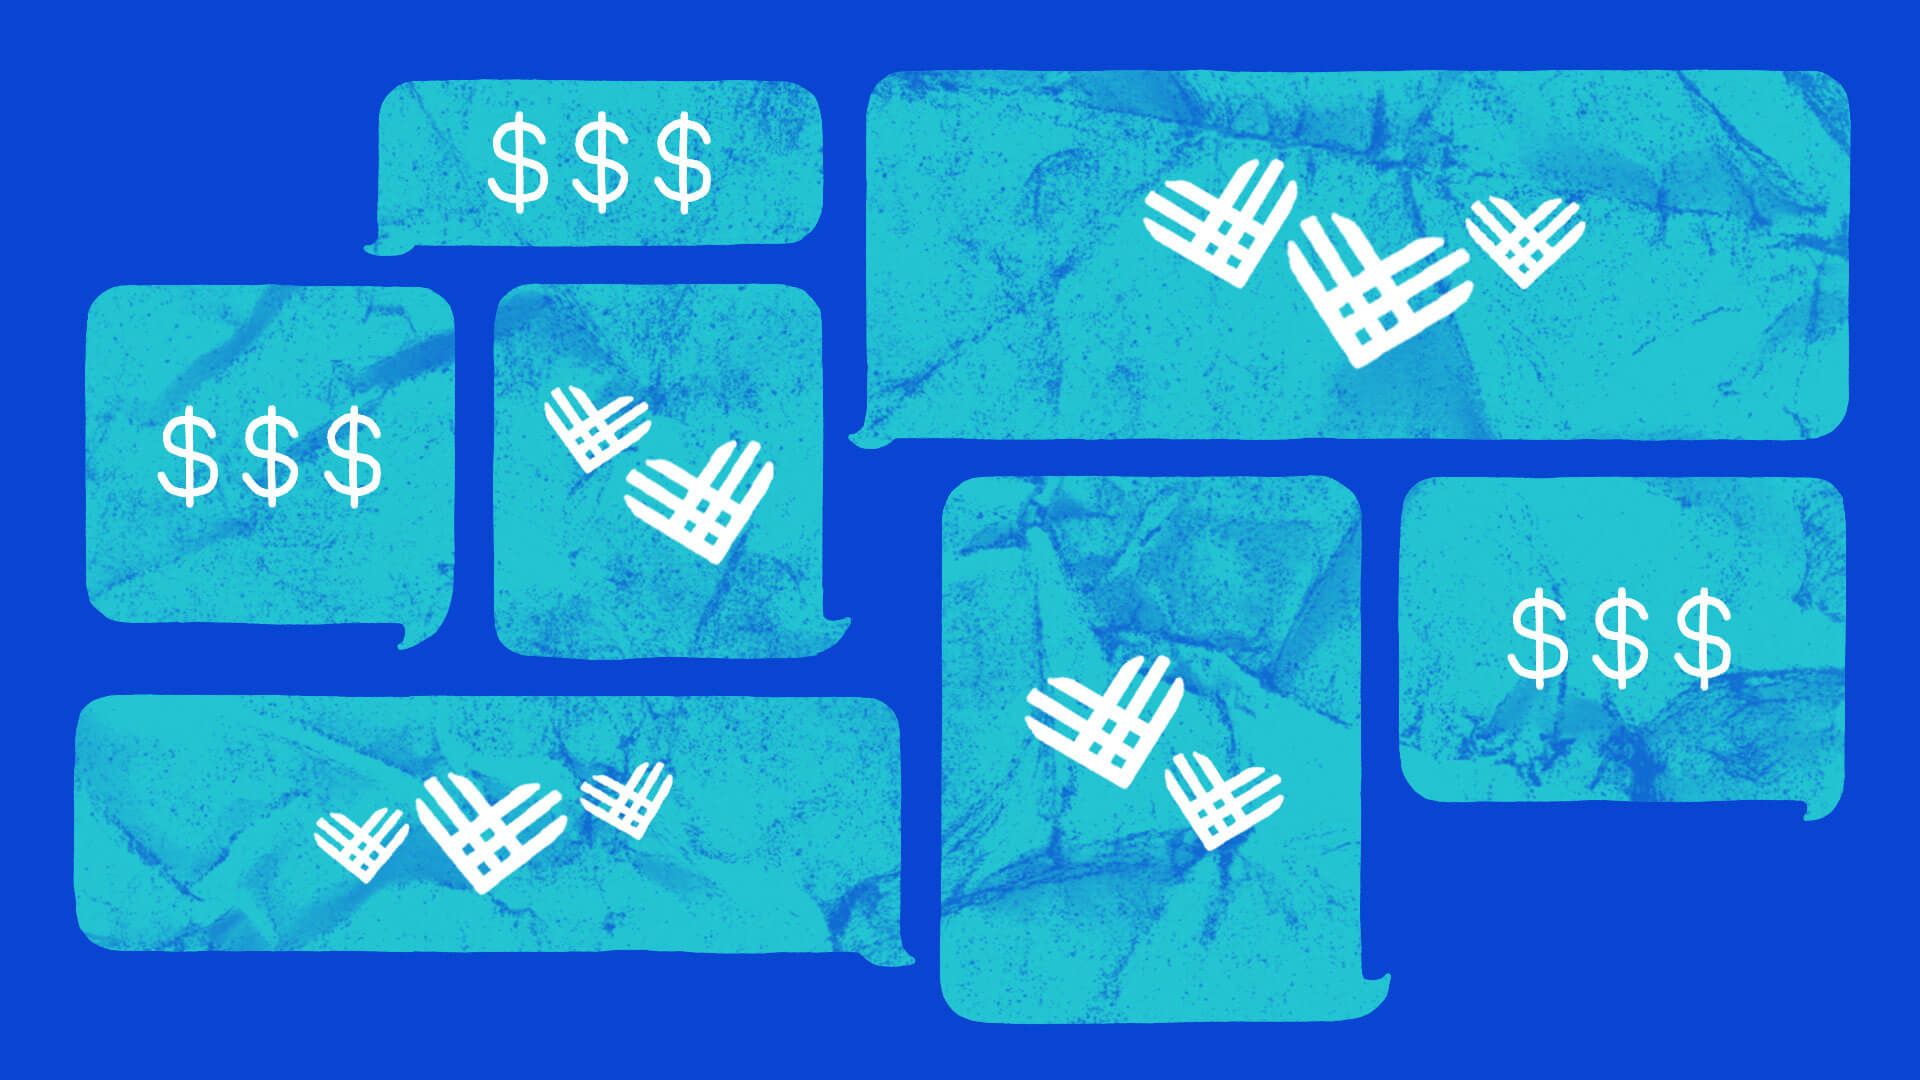 Illustration of teal text message bubbles with the Giving Tuesday logo inside of them on a blue background.